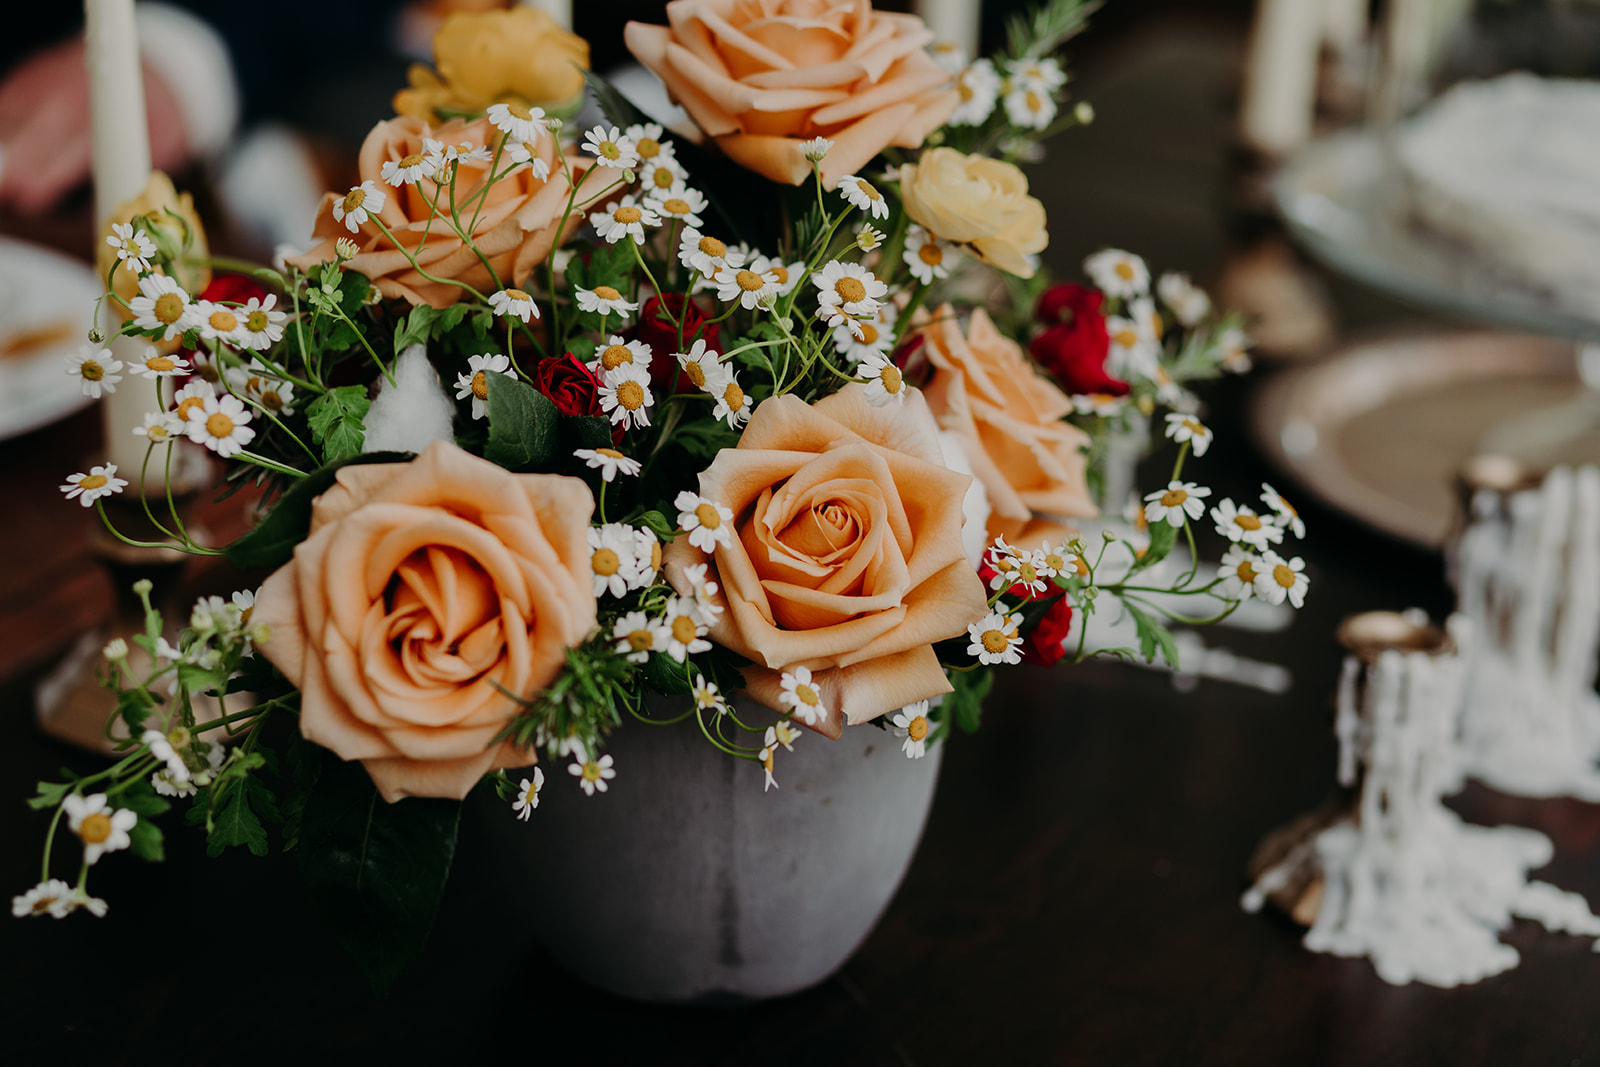 Disney Themed Wedding - Arizona florist Phoenix scottsdale Mesa chandler Sedona Flagstaff Prescott - Centerpiece Inspiration